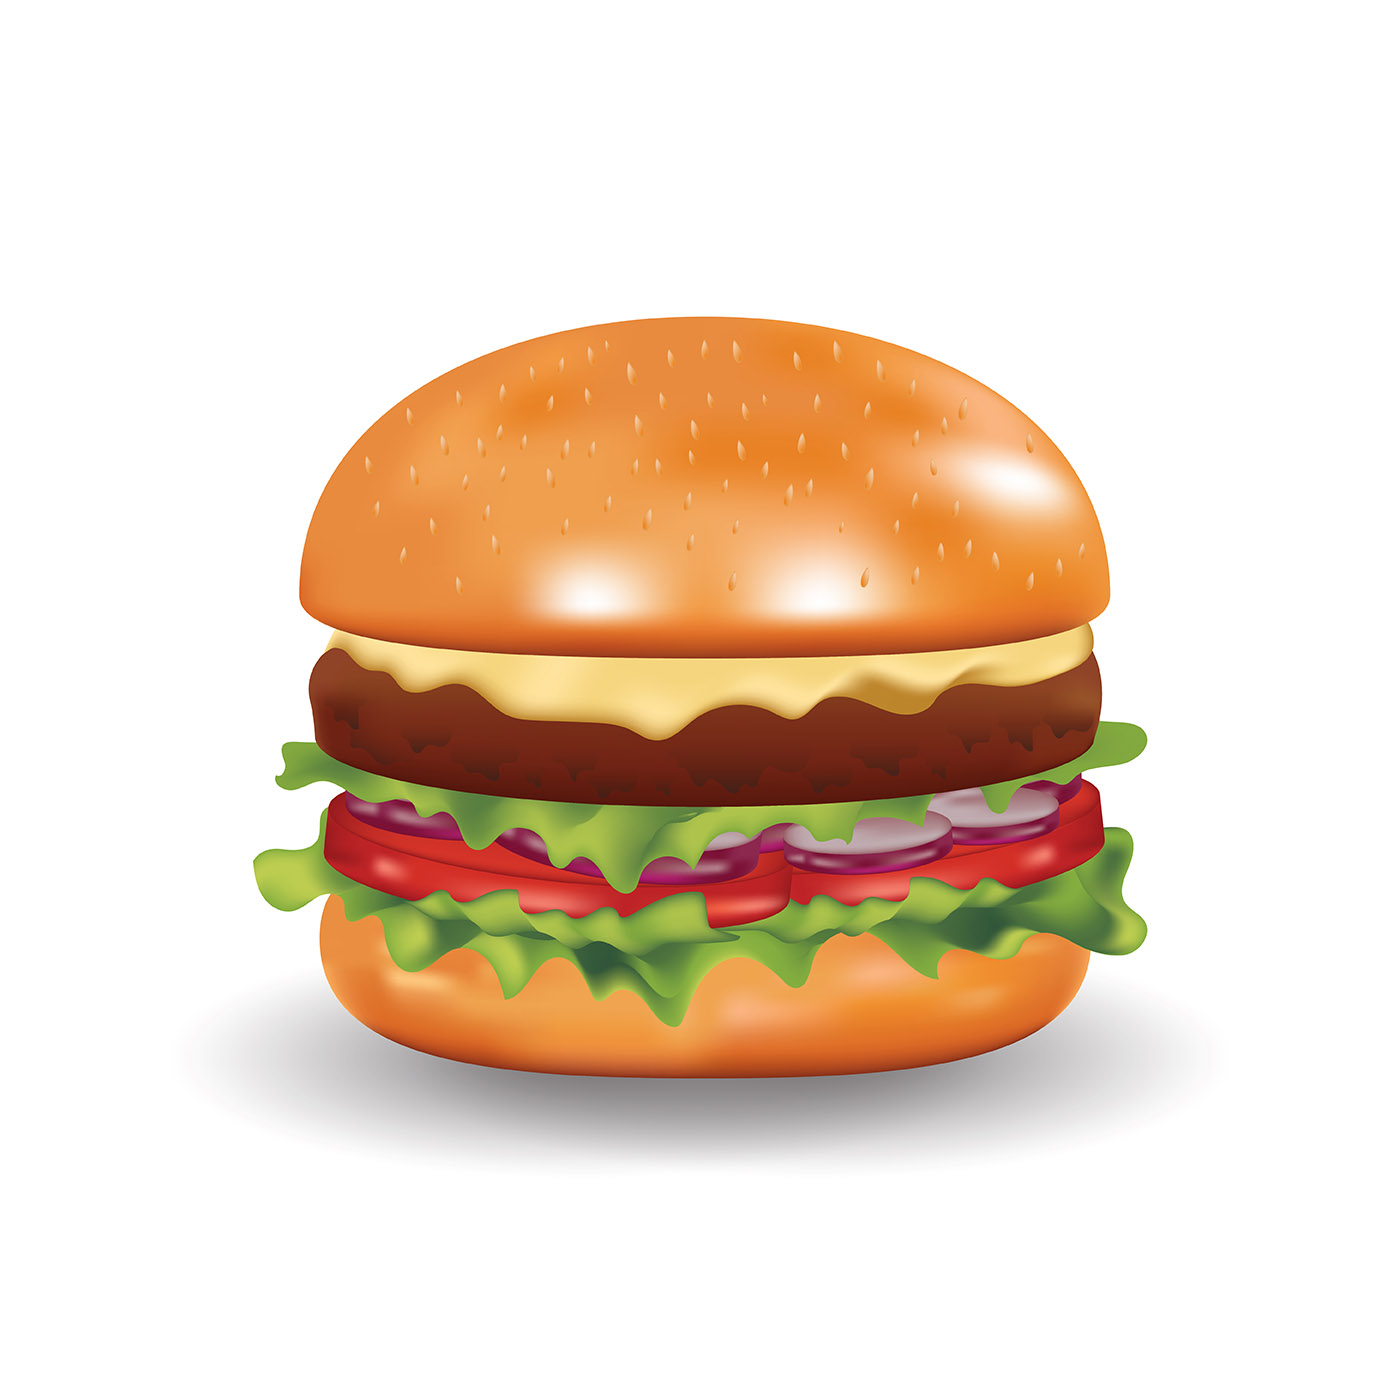 Realistic Fast Food - Download Free Vector Art, Stock ...